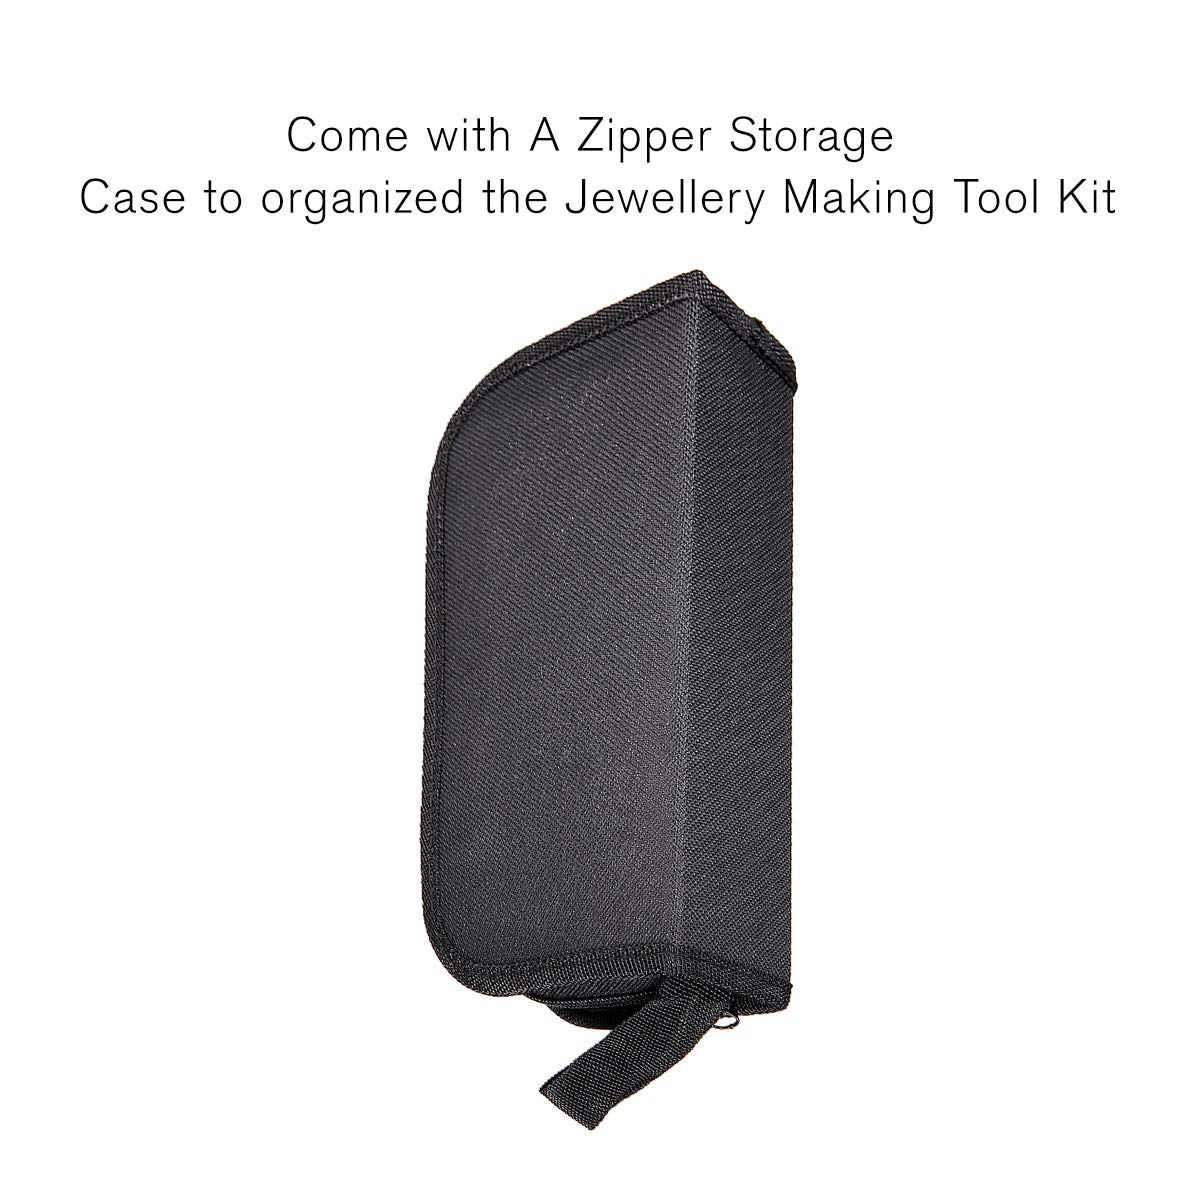 Jeteven 21 Pcs Jewellery Making Tool Kit with Zipper Storage Case for Earrings Crafting Beading